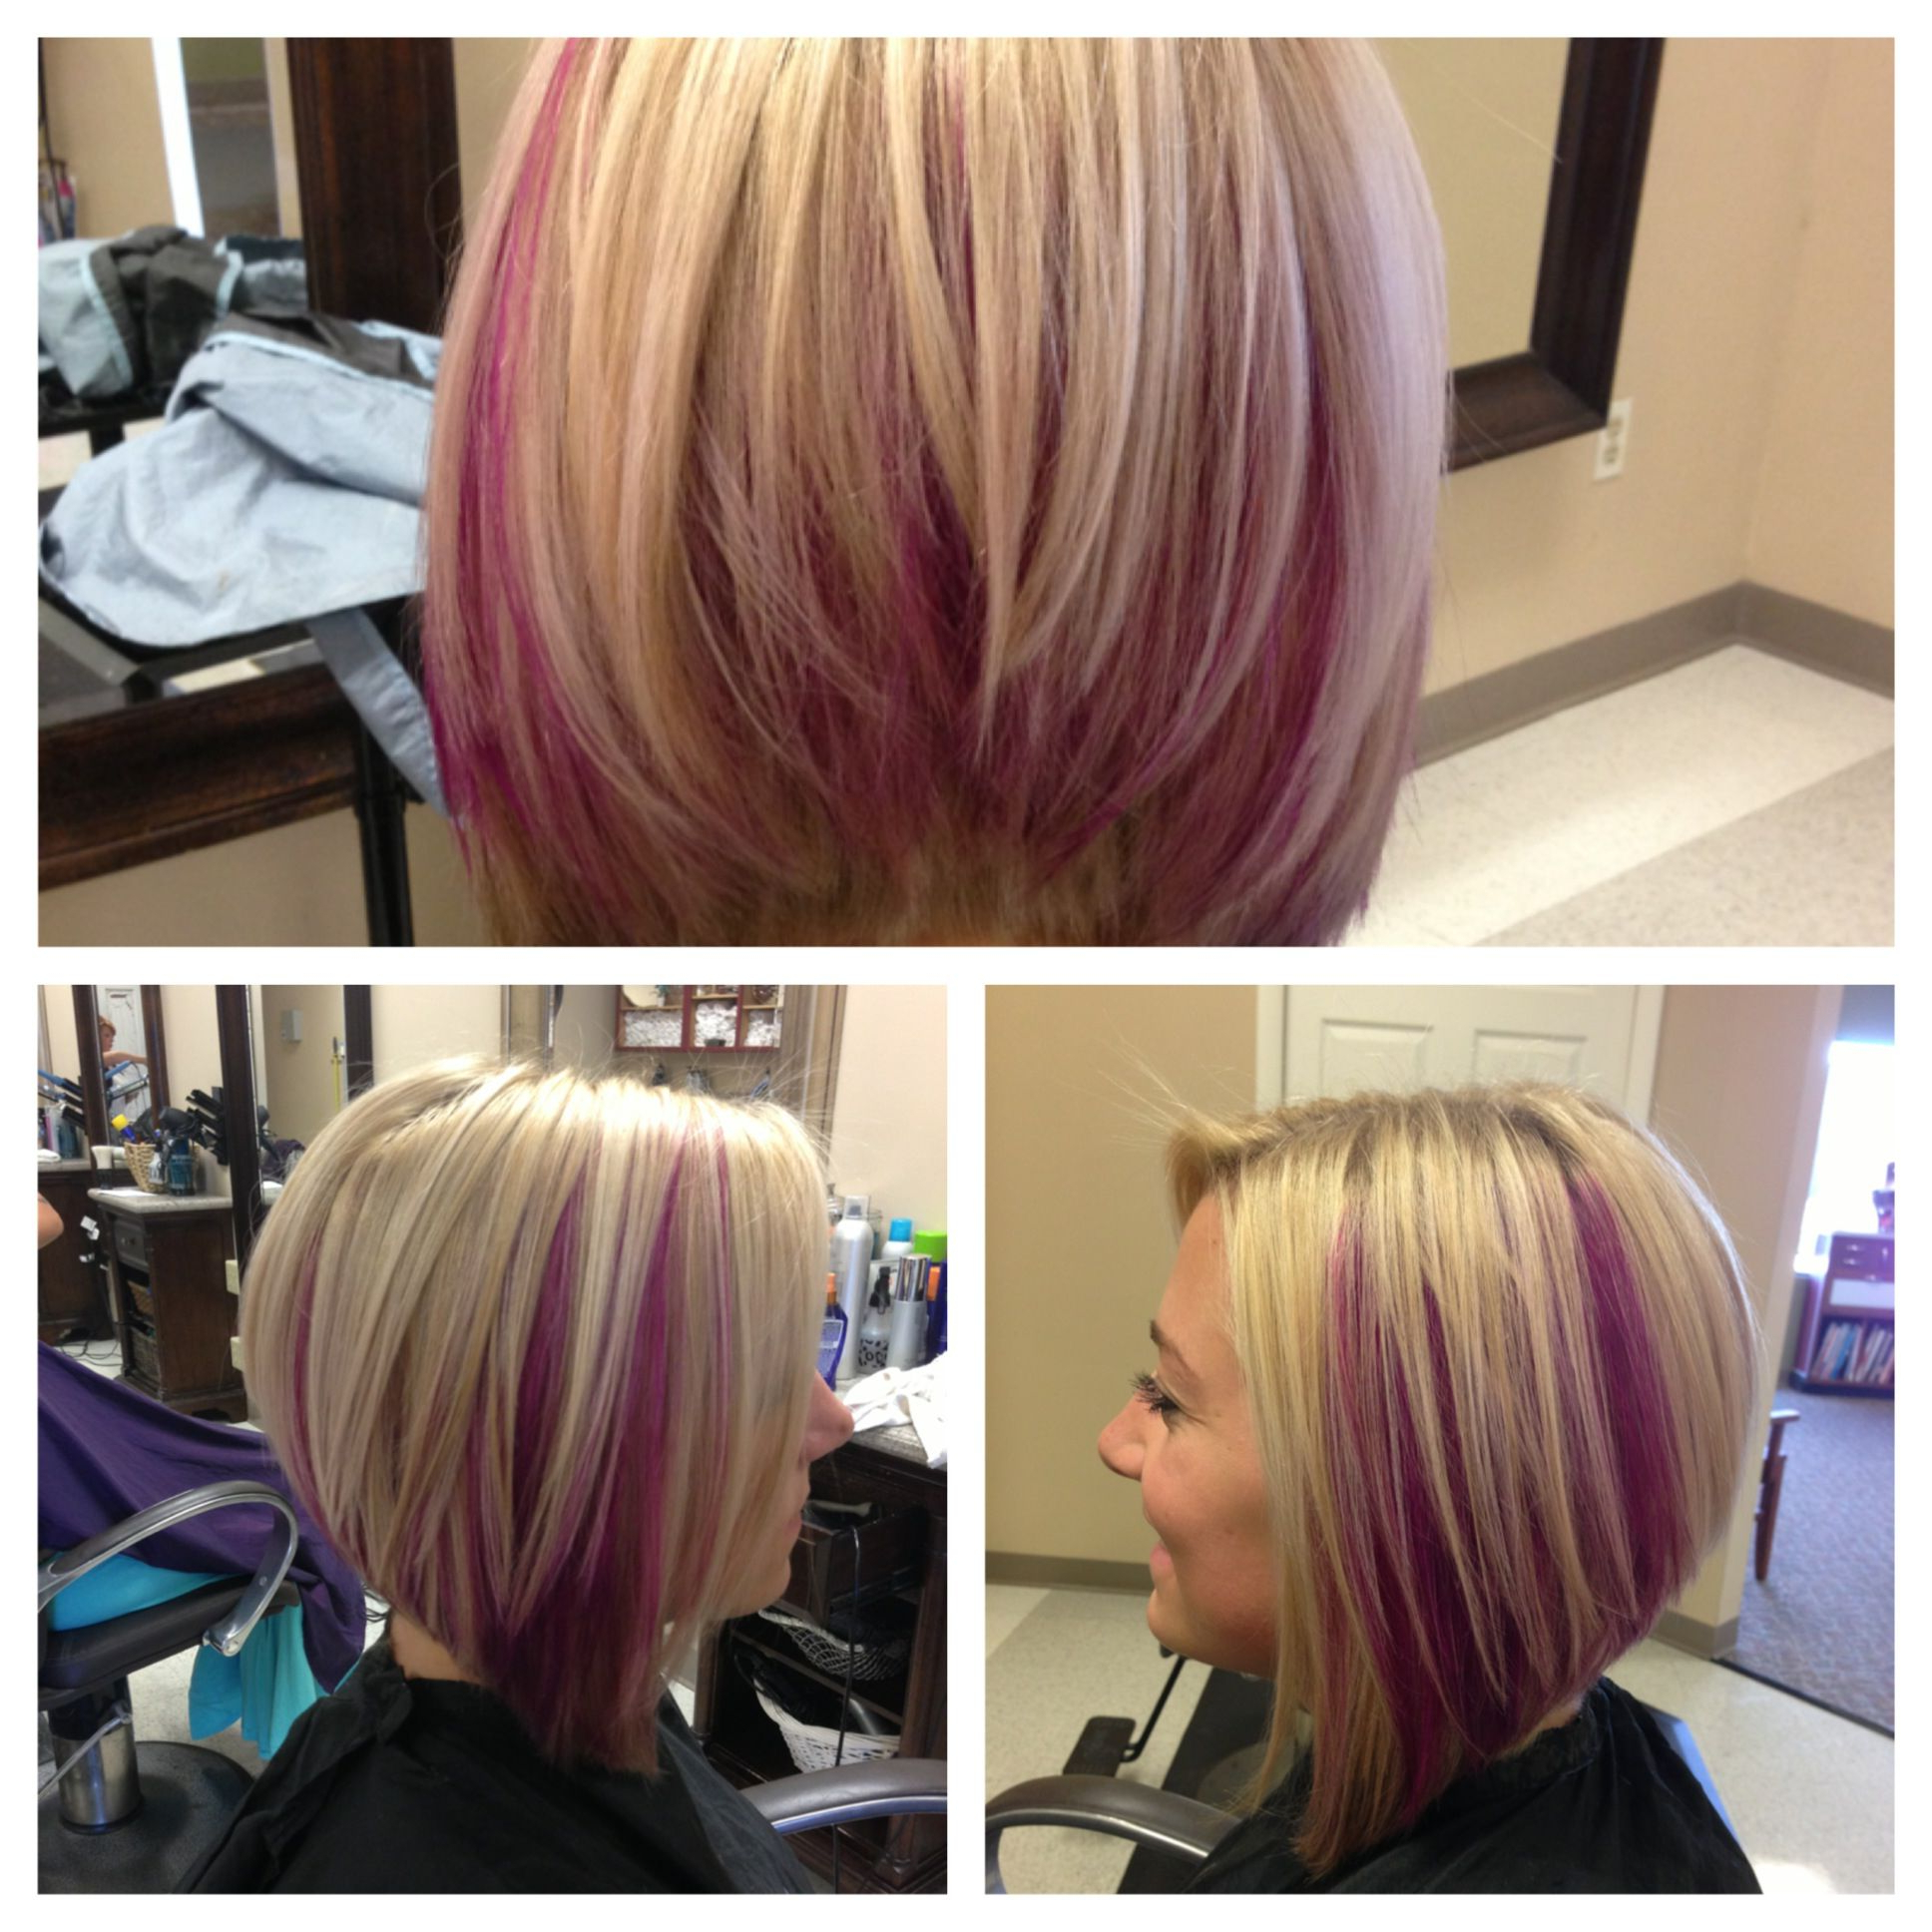 30 Must Try Medium Bob Hairstyles | Beautyyy | Pinterest | Hair With Extreme Angled Bob Haircuts With Pink Peek A Boos (View 4 of 20)